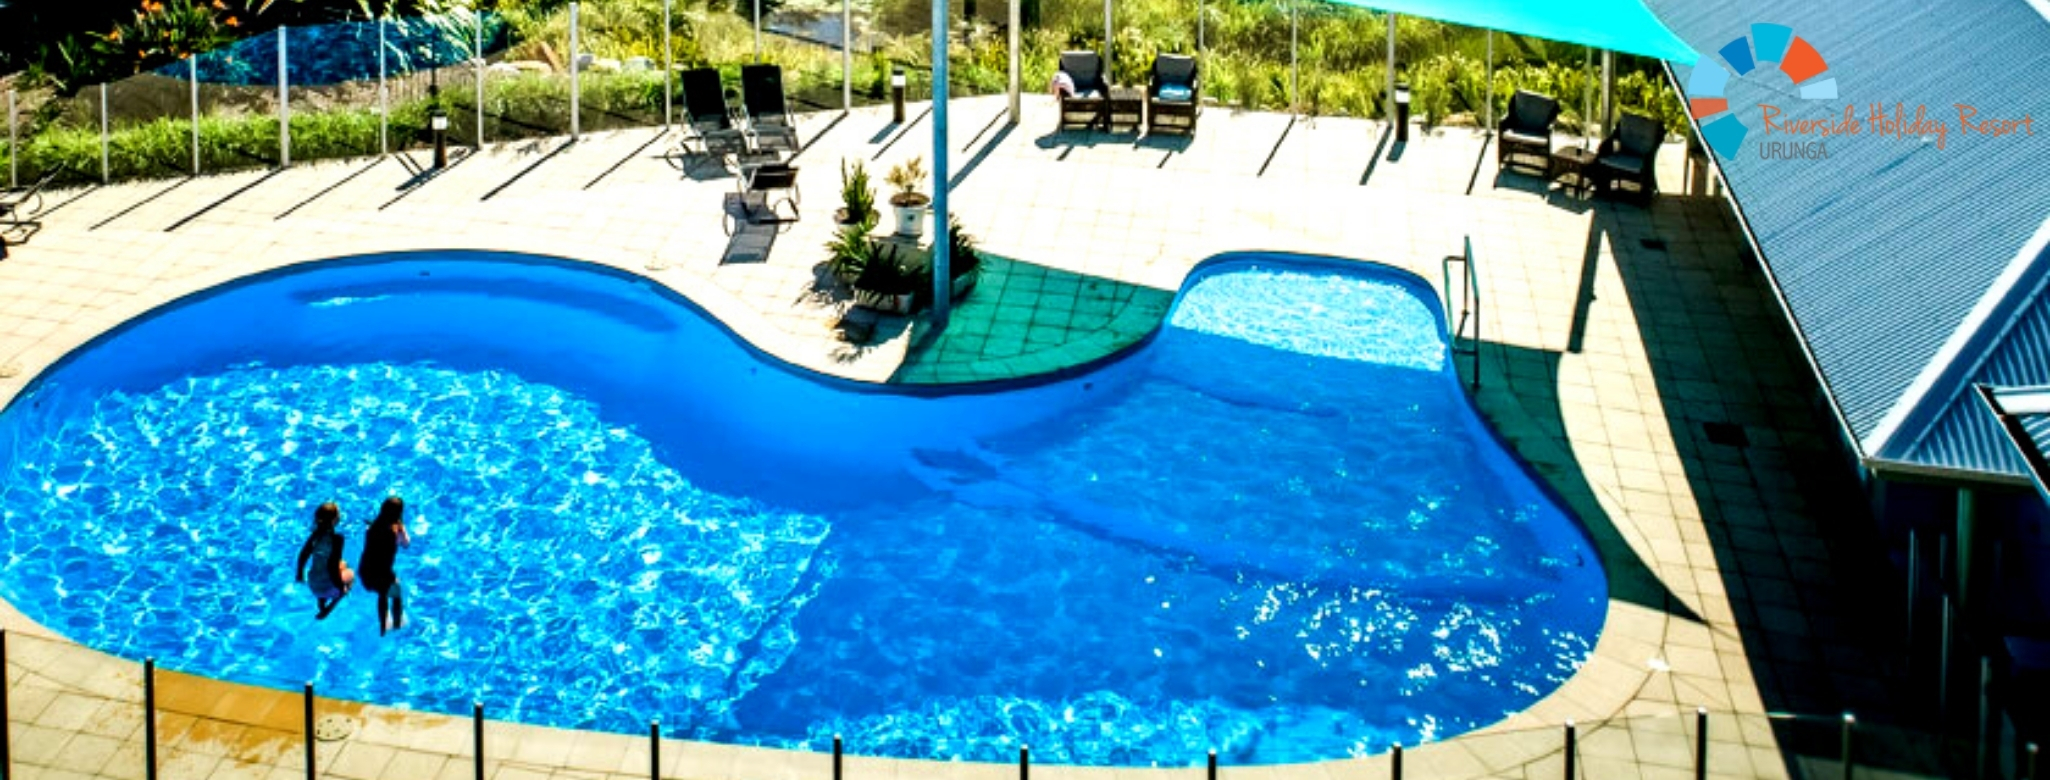 Riverside Holiday Resort Urunga family friendly and accessible pool